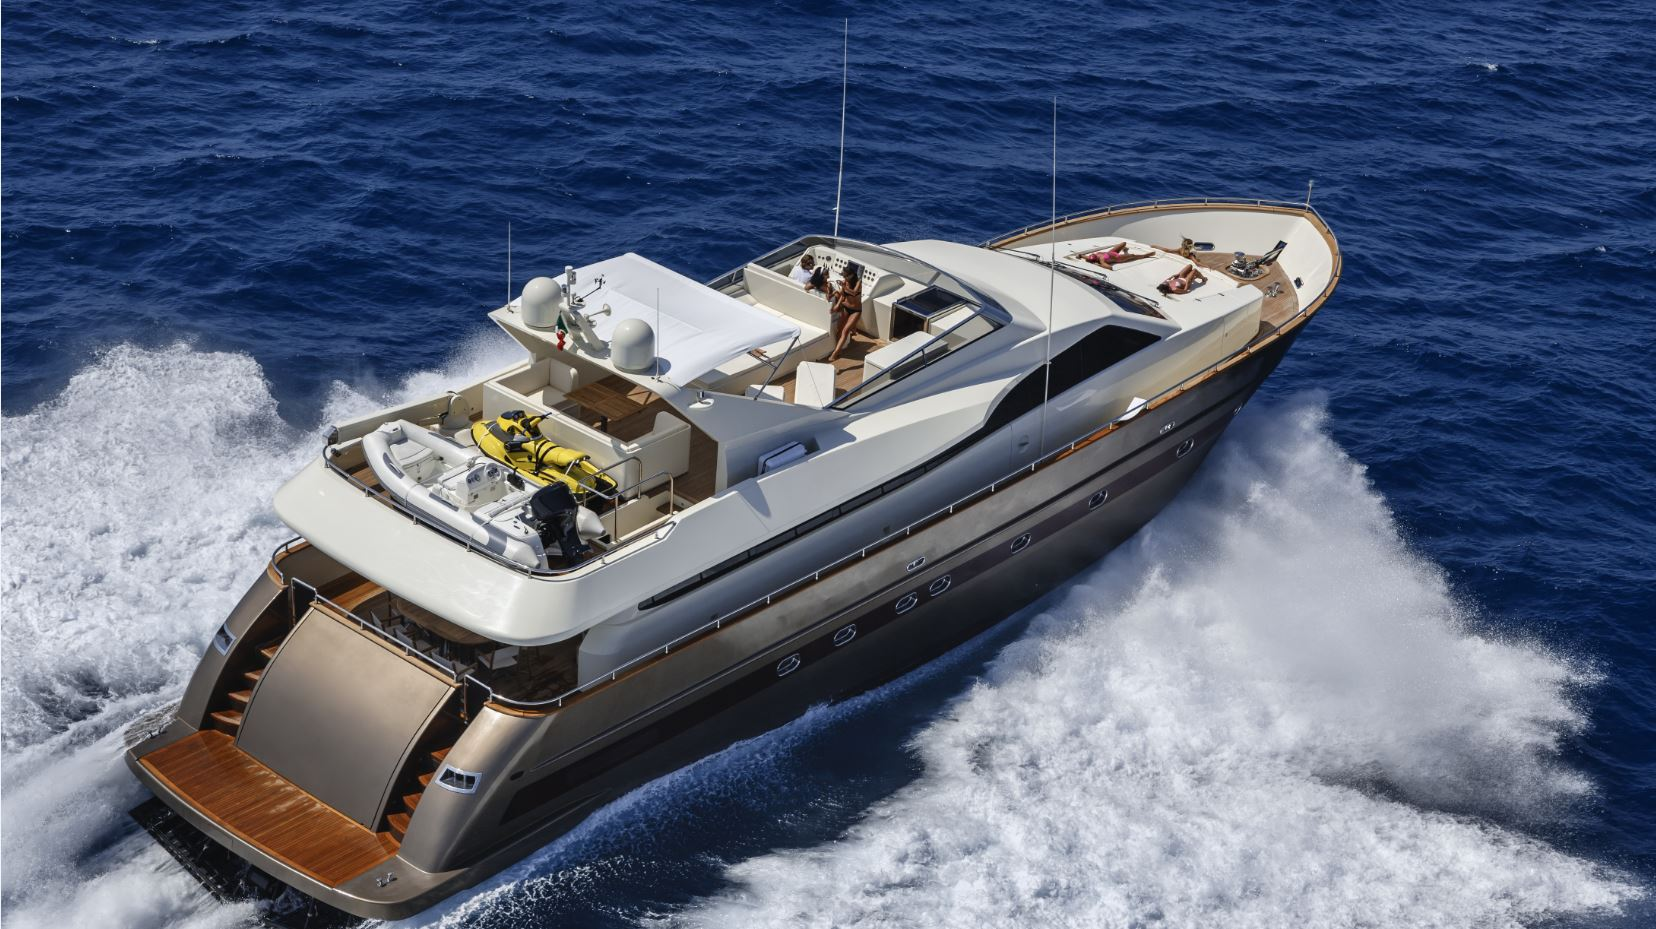 luxury yacht, superyachts, super yachts, yacht charter